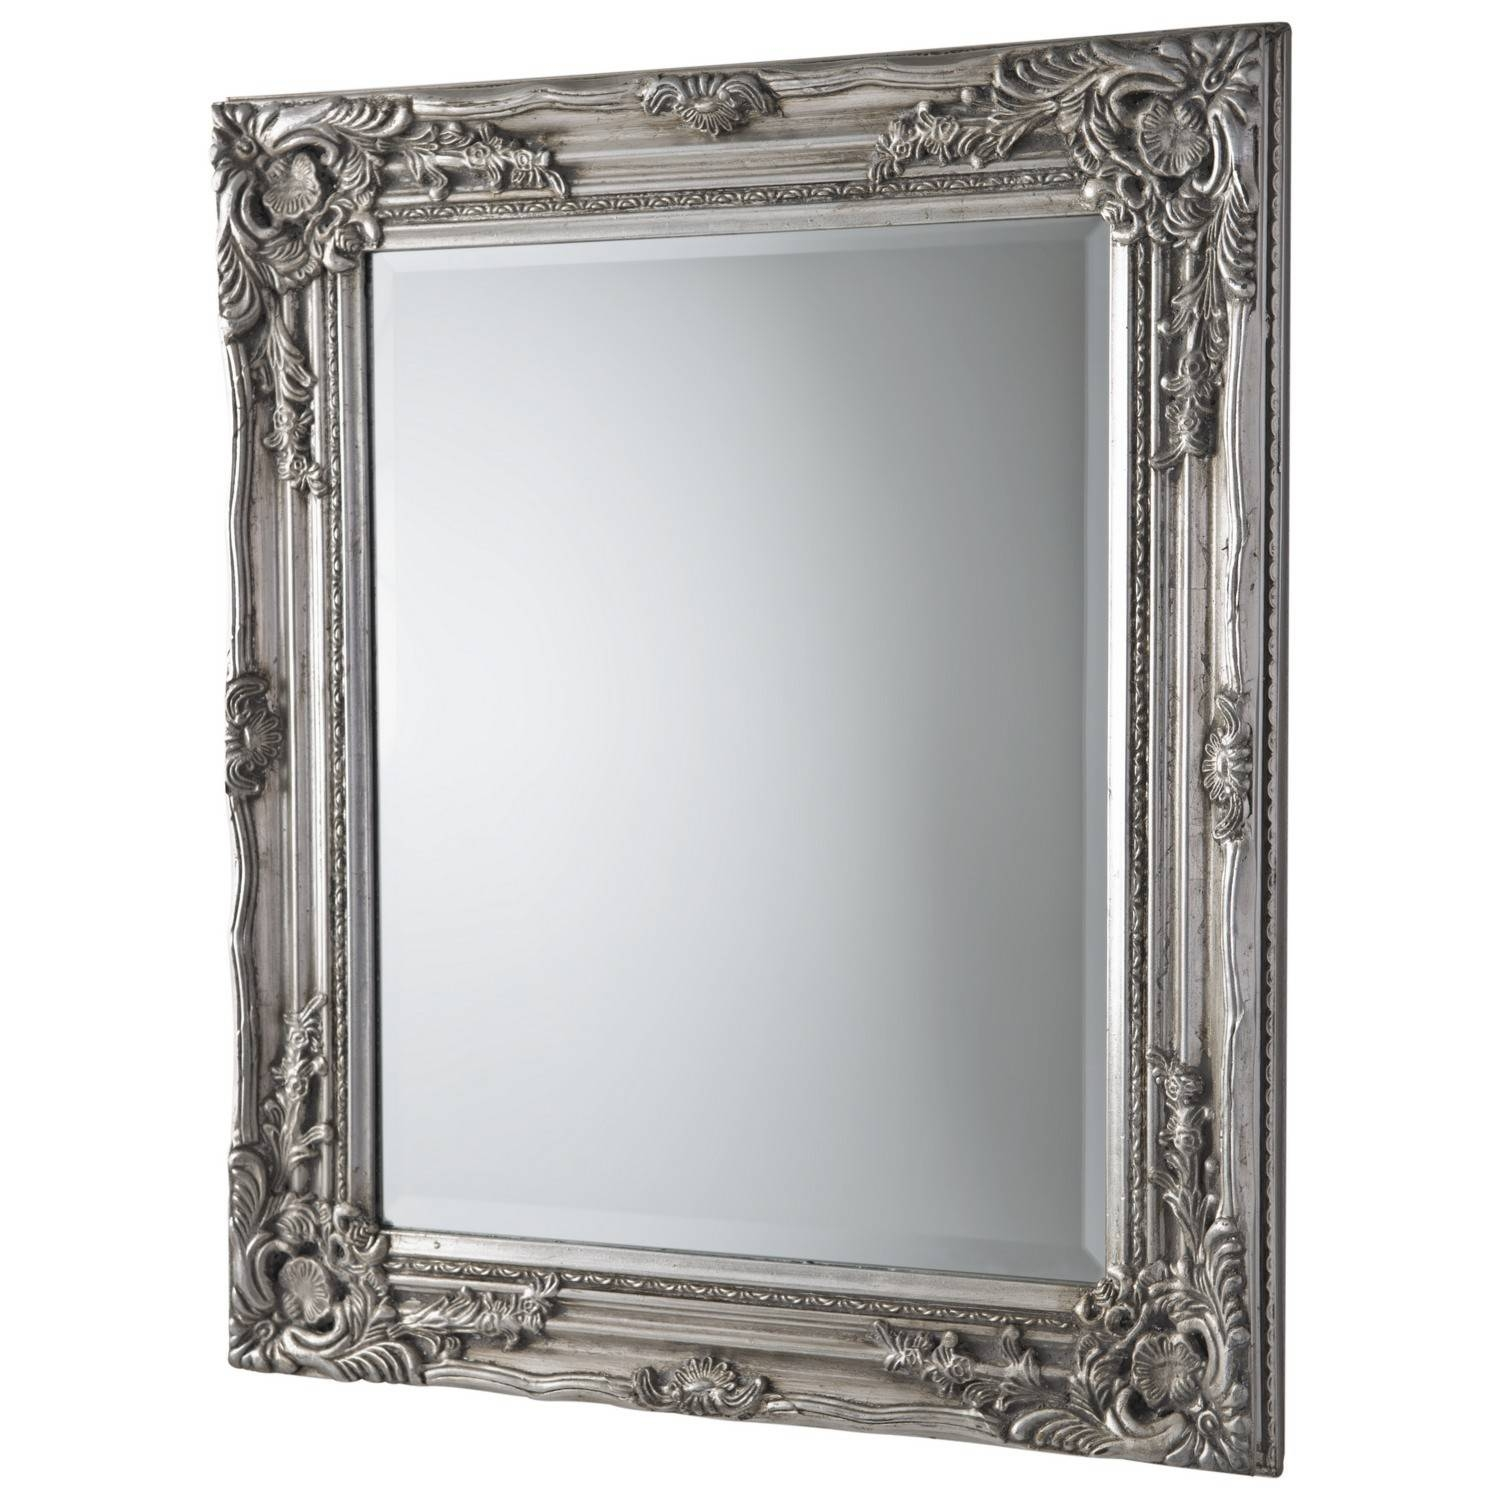 Antique Ornate Mirror Silver within Antique Ornate Mirrors (Image 6 of 25)